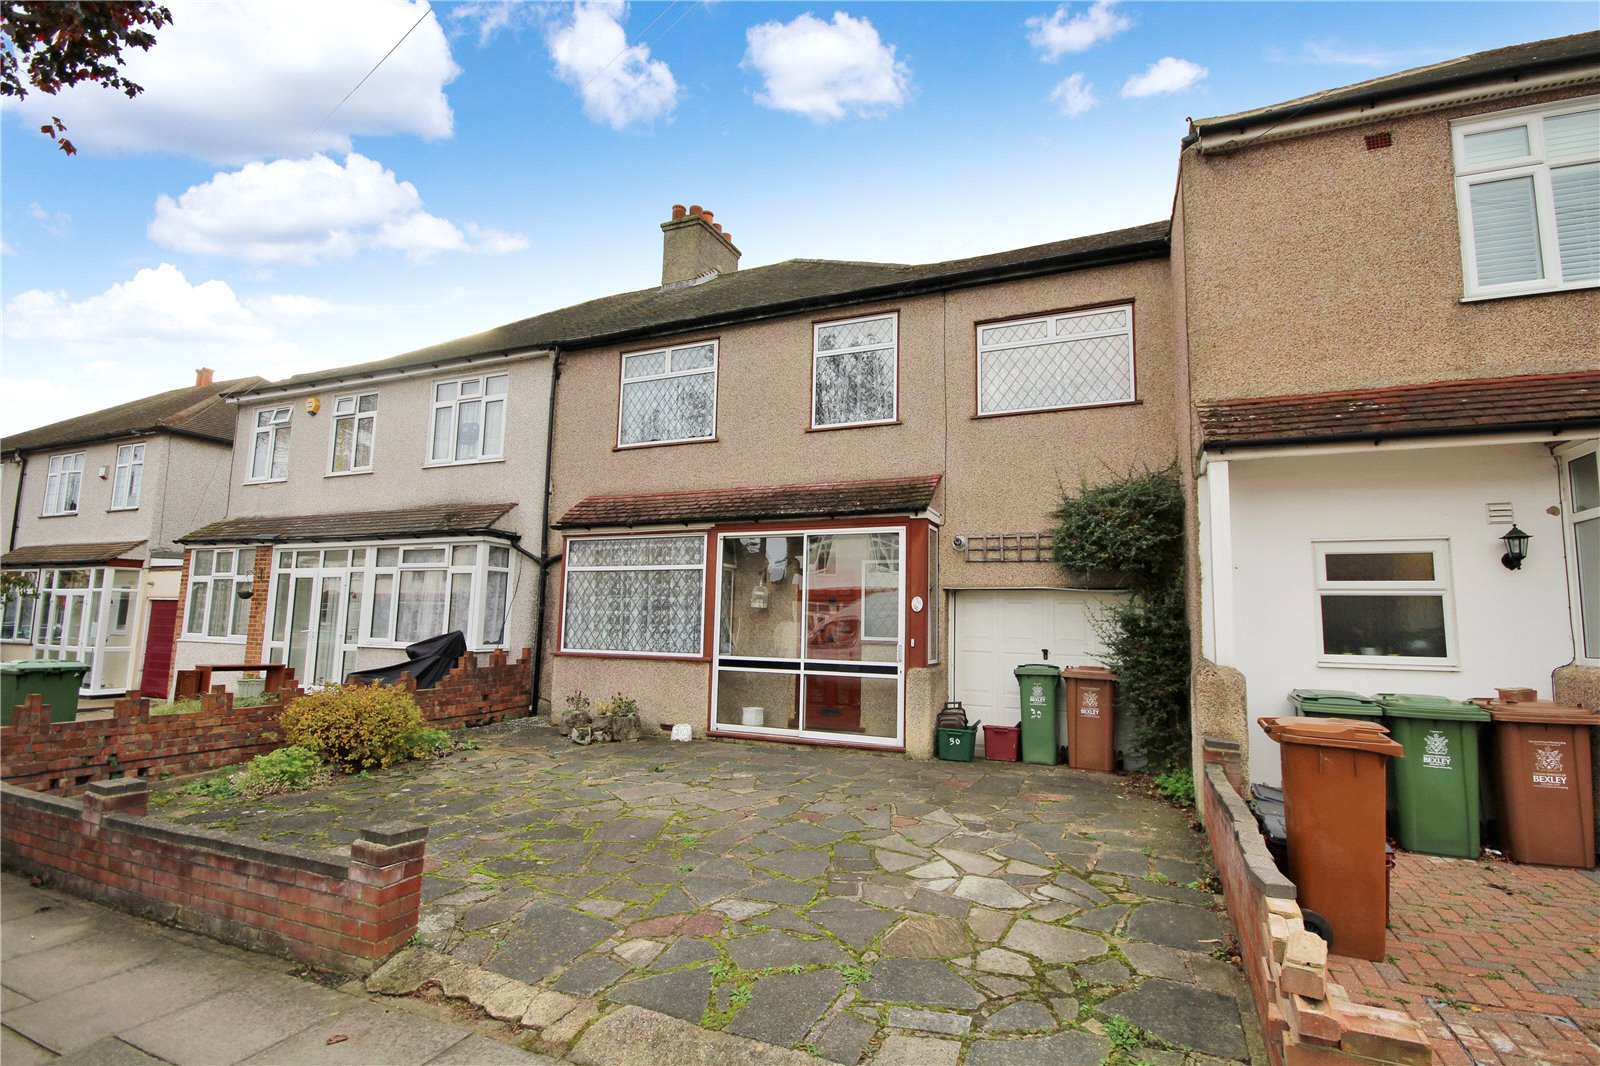 Balliol Road, Welling, Kent, DA16